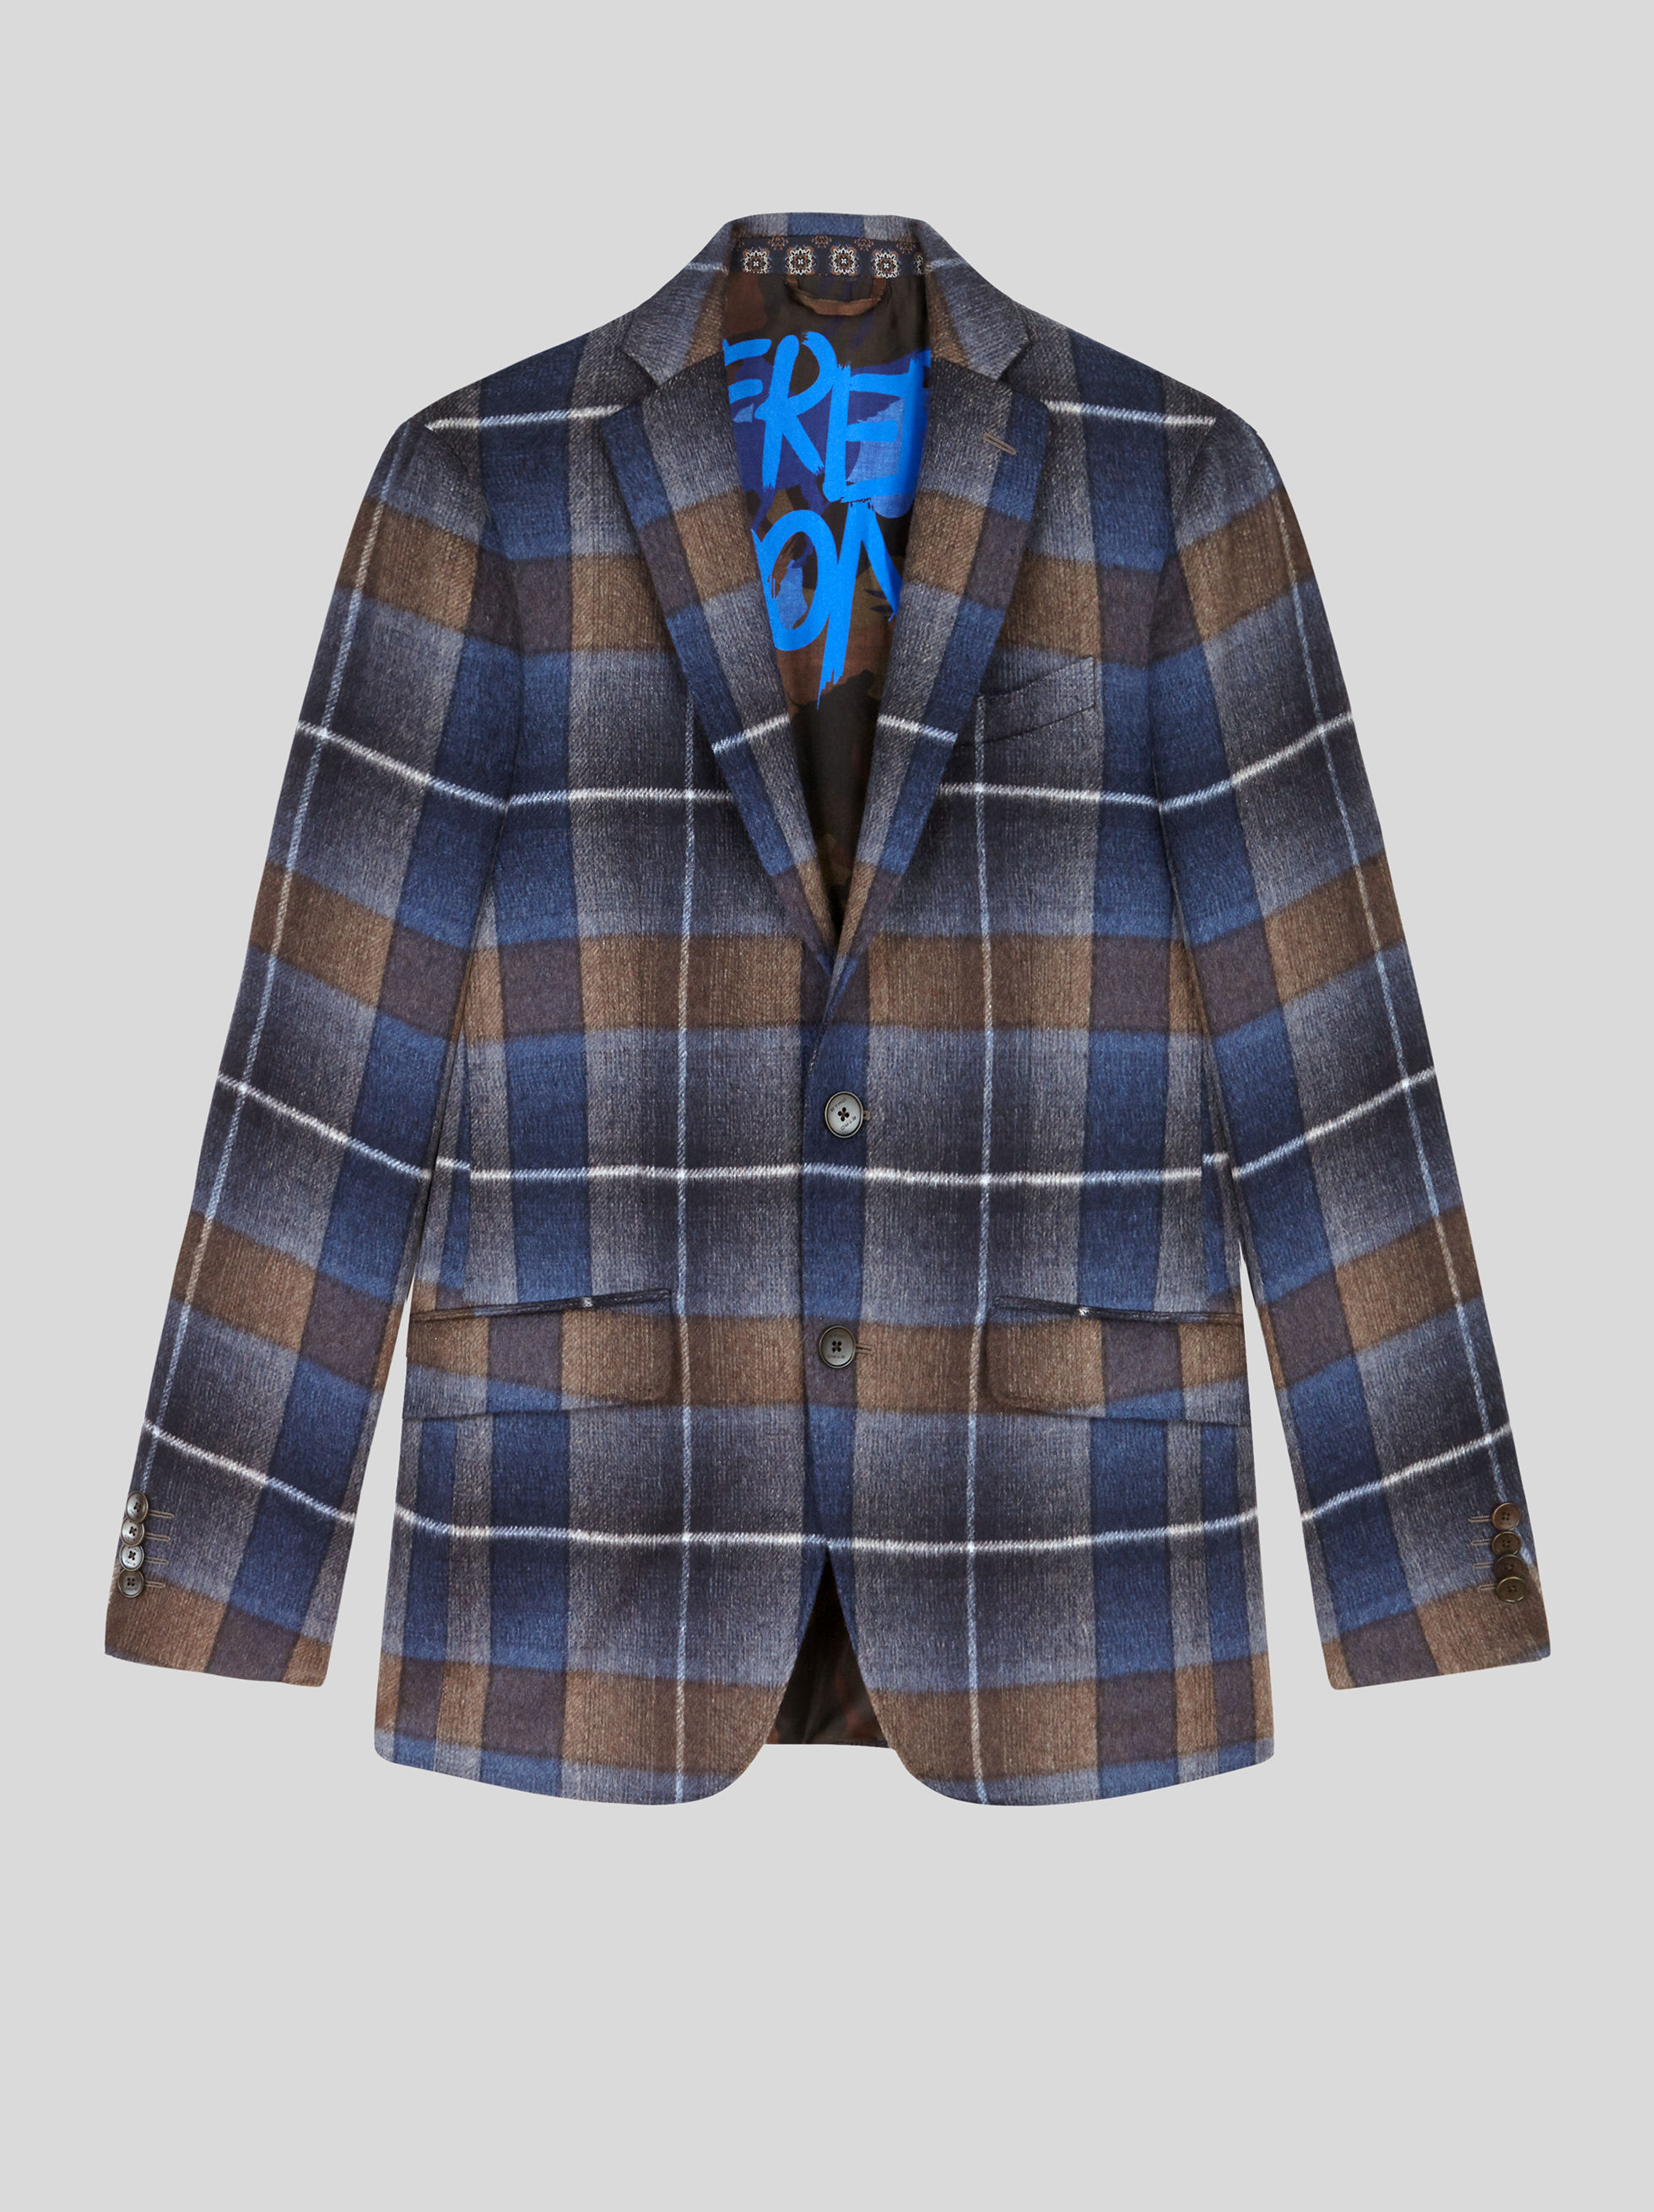 CHECK BENETROESSERE TAILORED JACKET